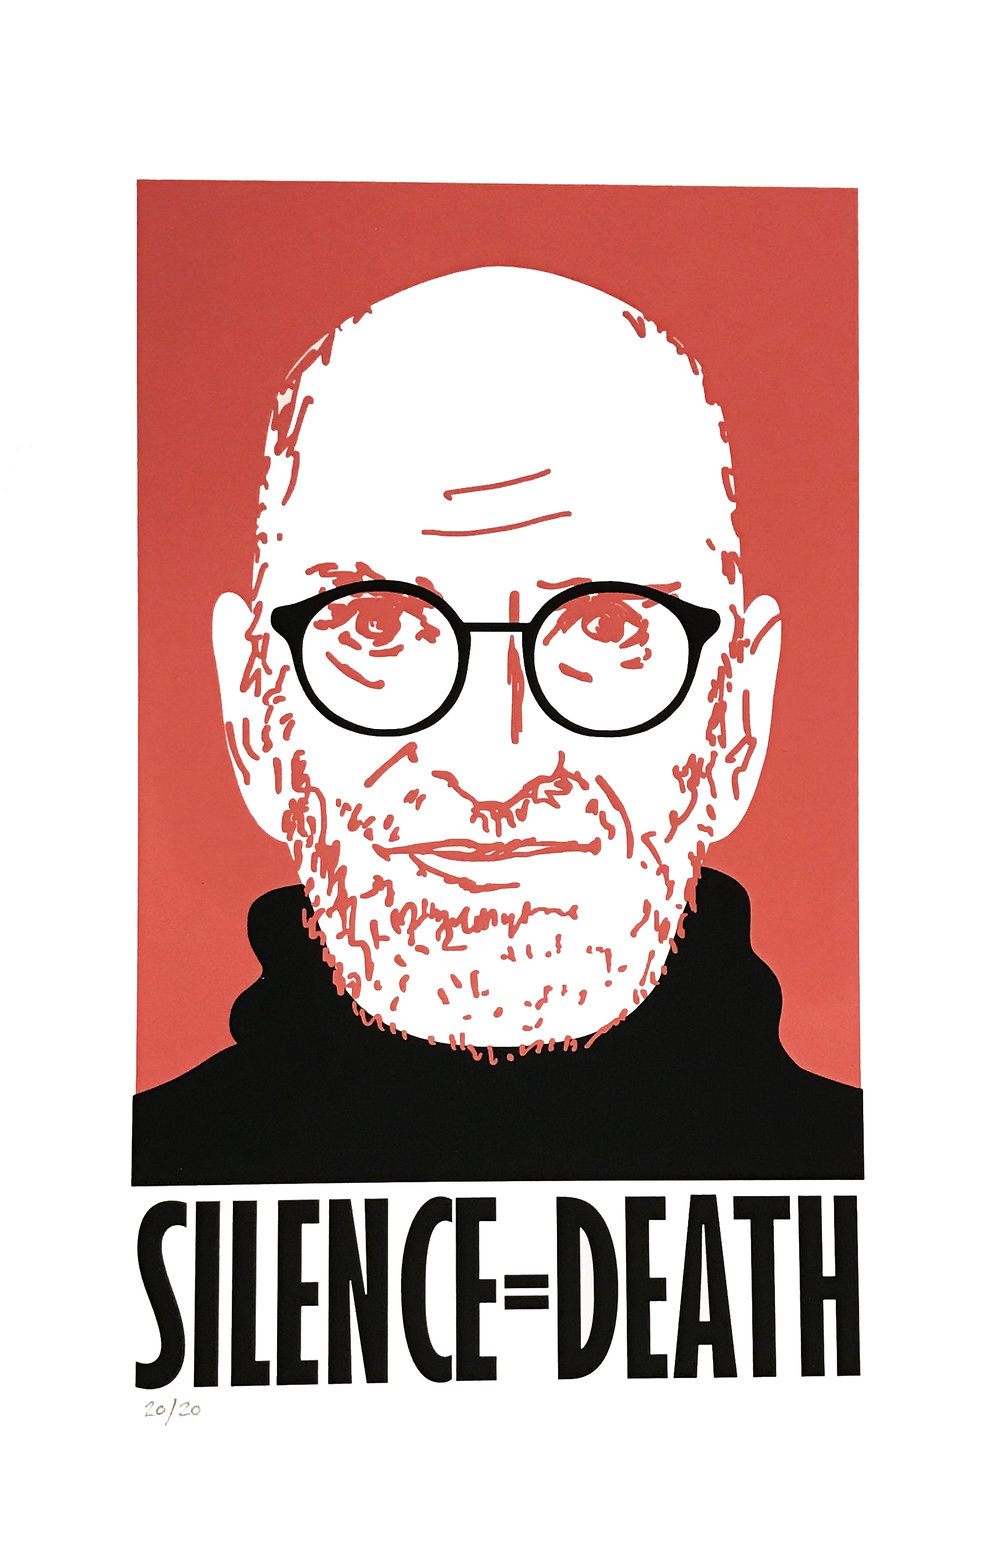 LARRY KRAMER - SILENCE EQUALS DEATH